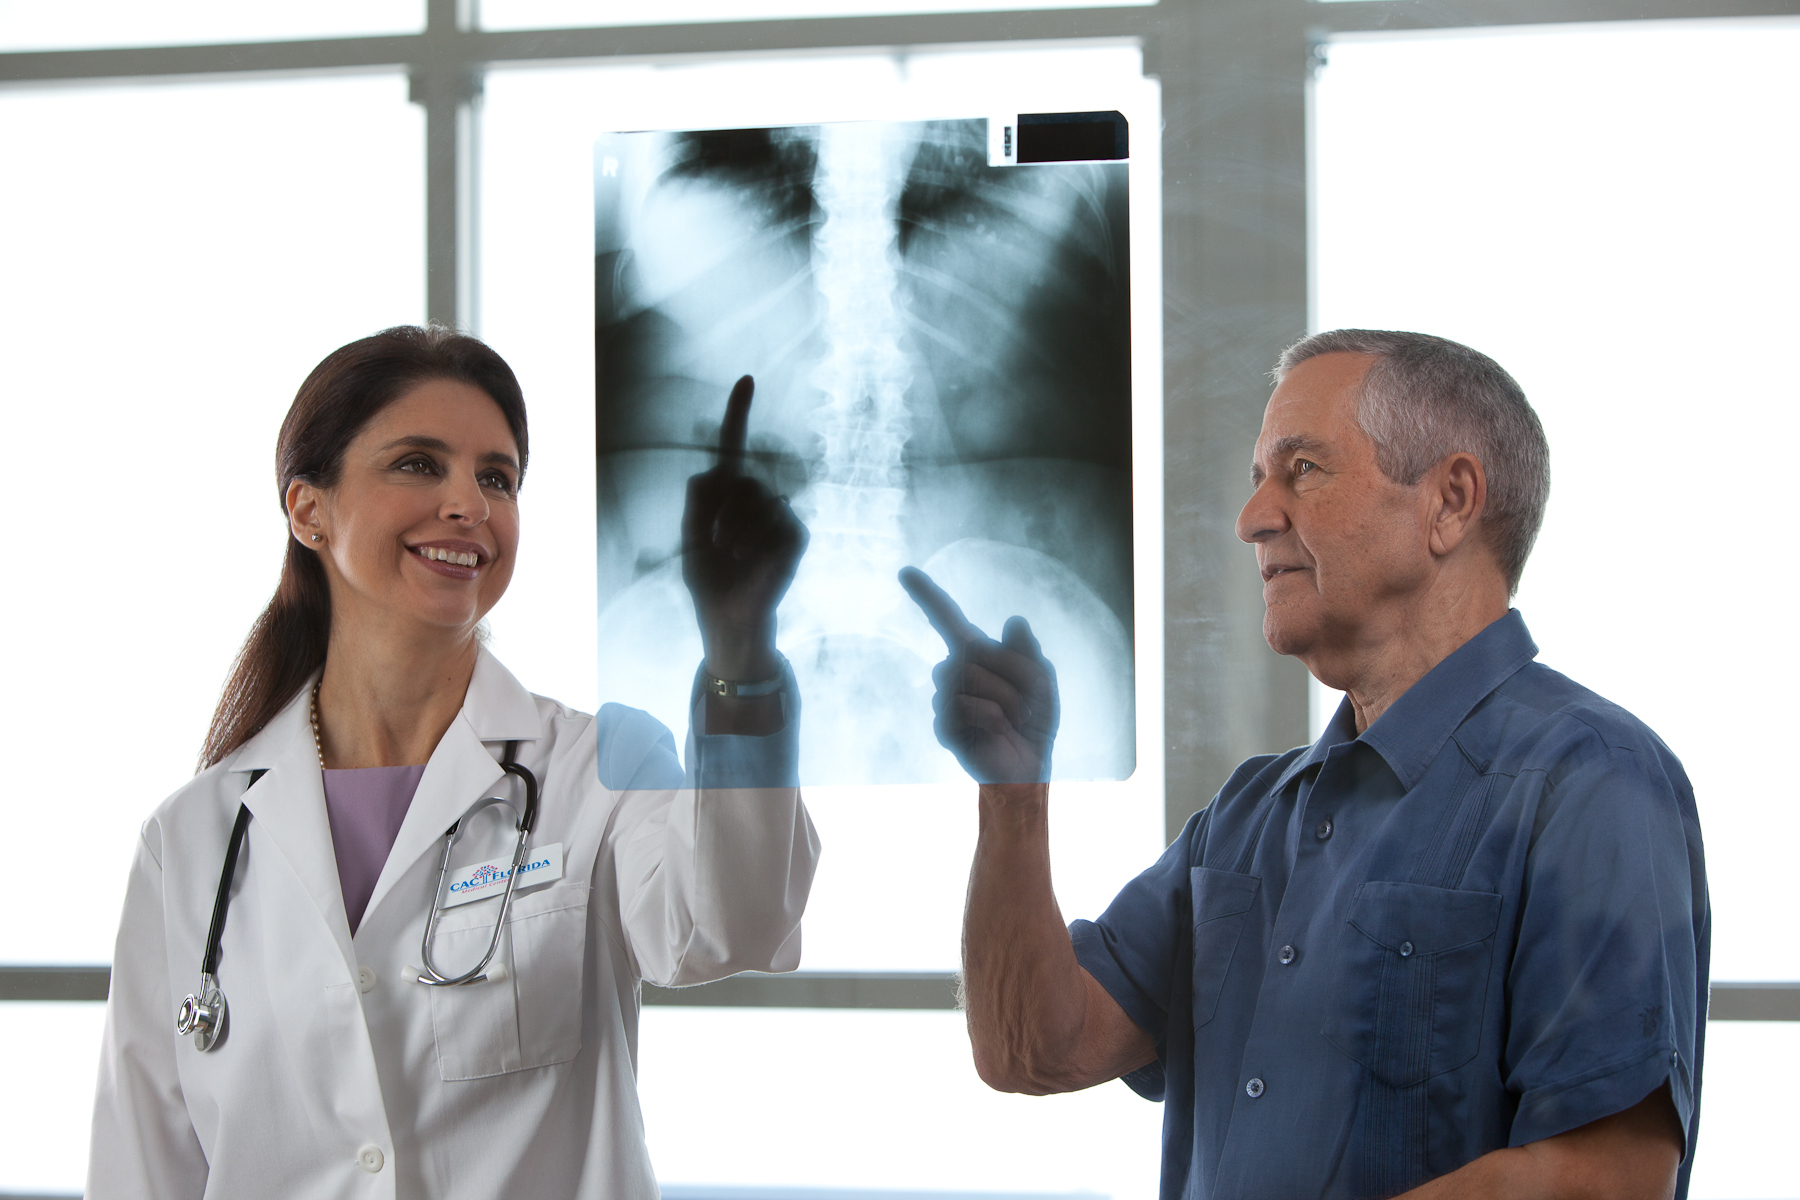 doctor & patient looking at x-ray